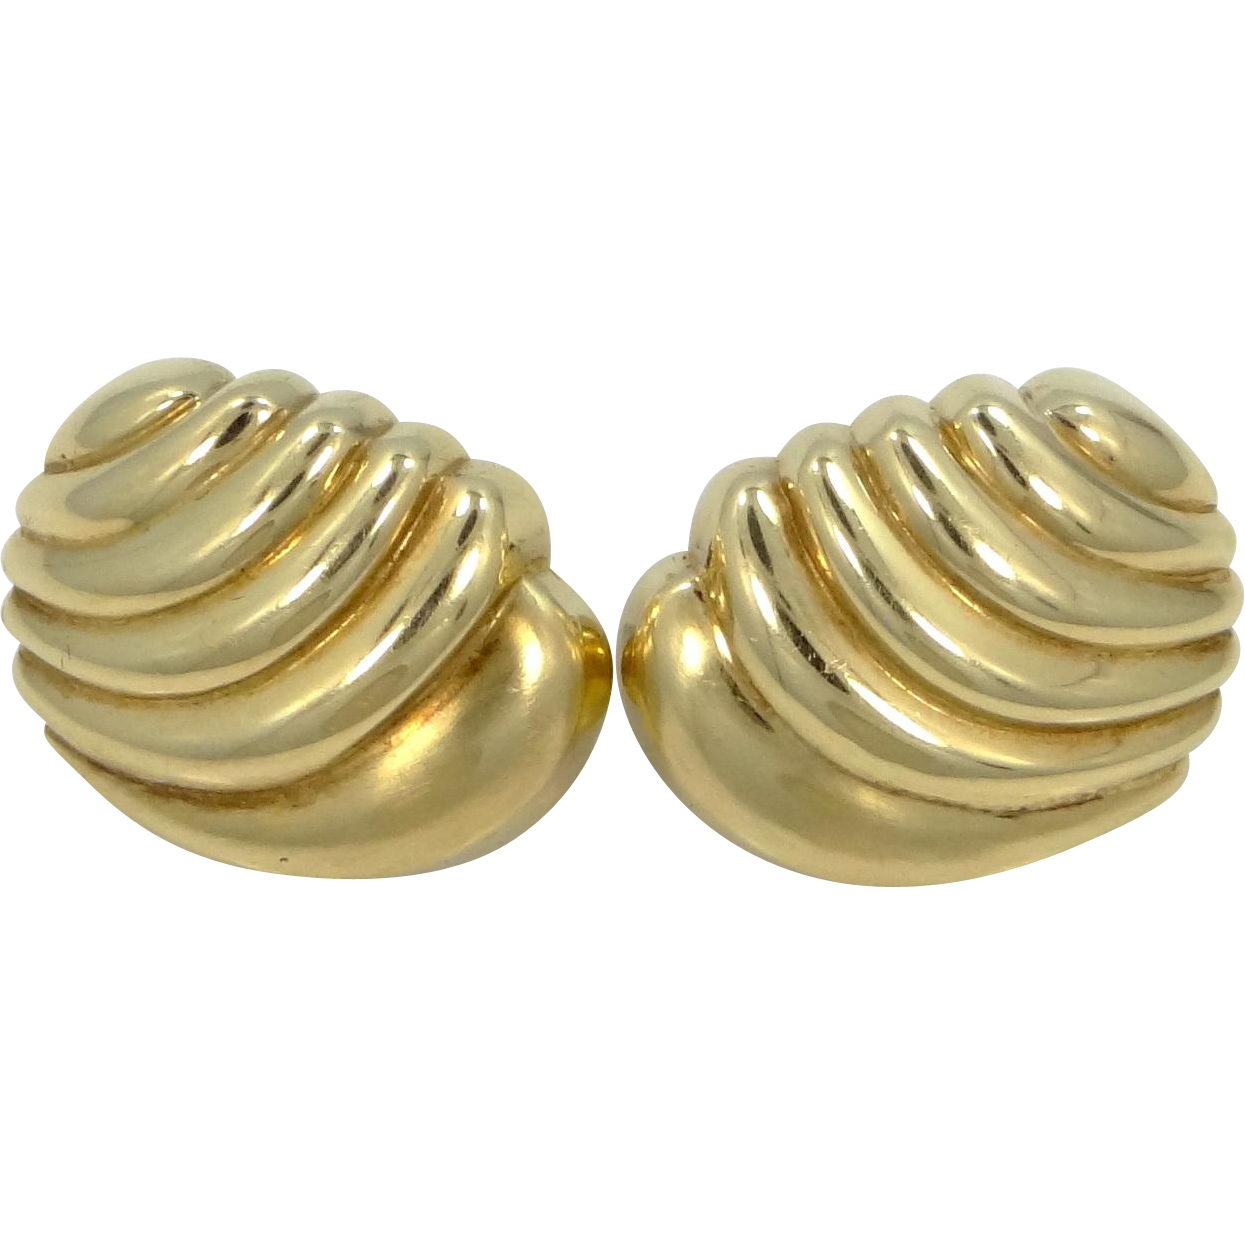 HEAVY 14k Solid Gold Lever Back Earrings 11.7 Grams of Gold